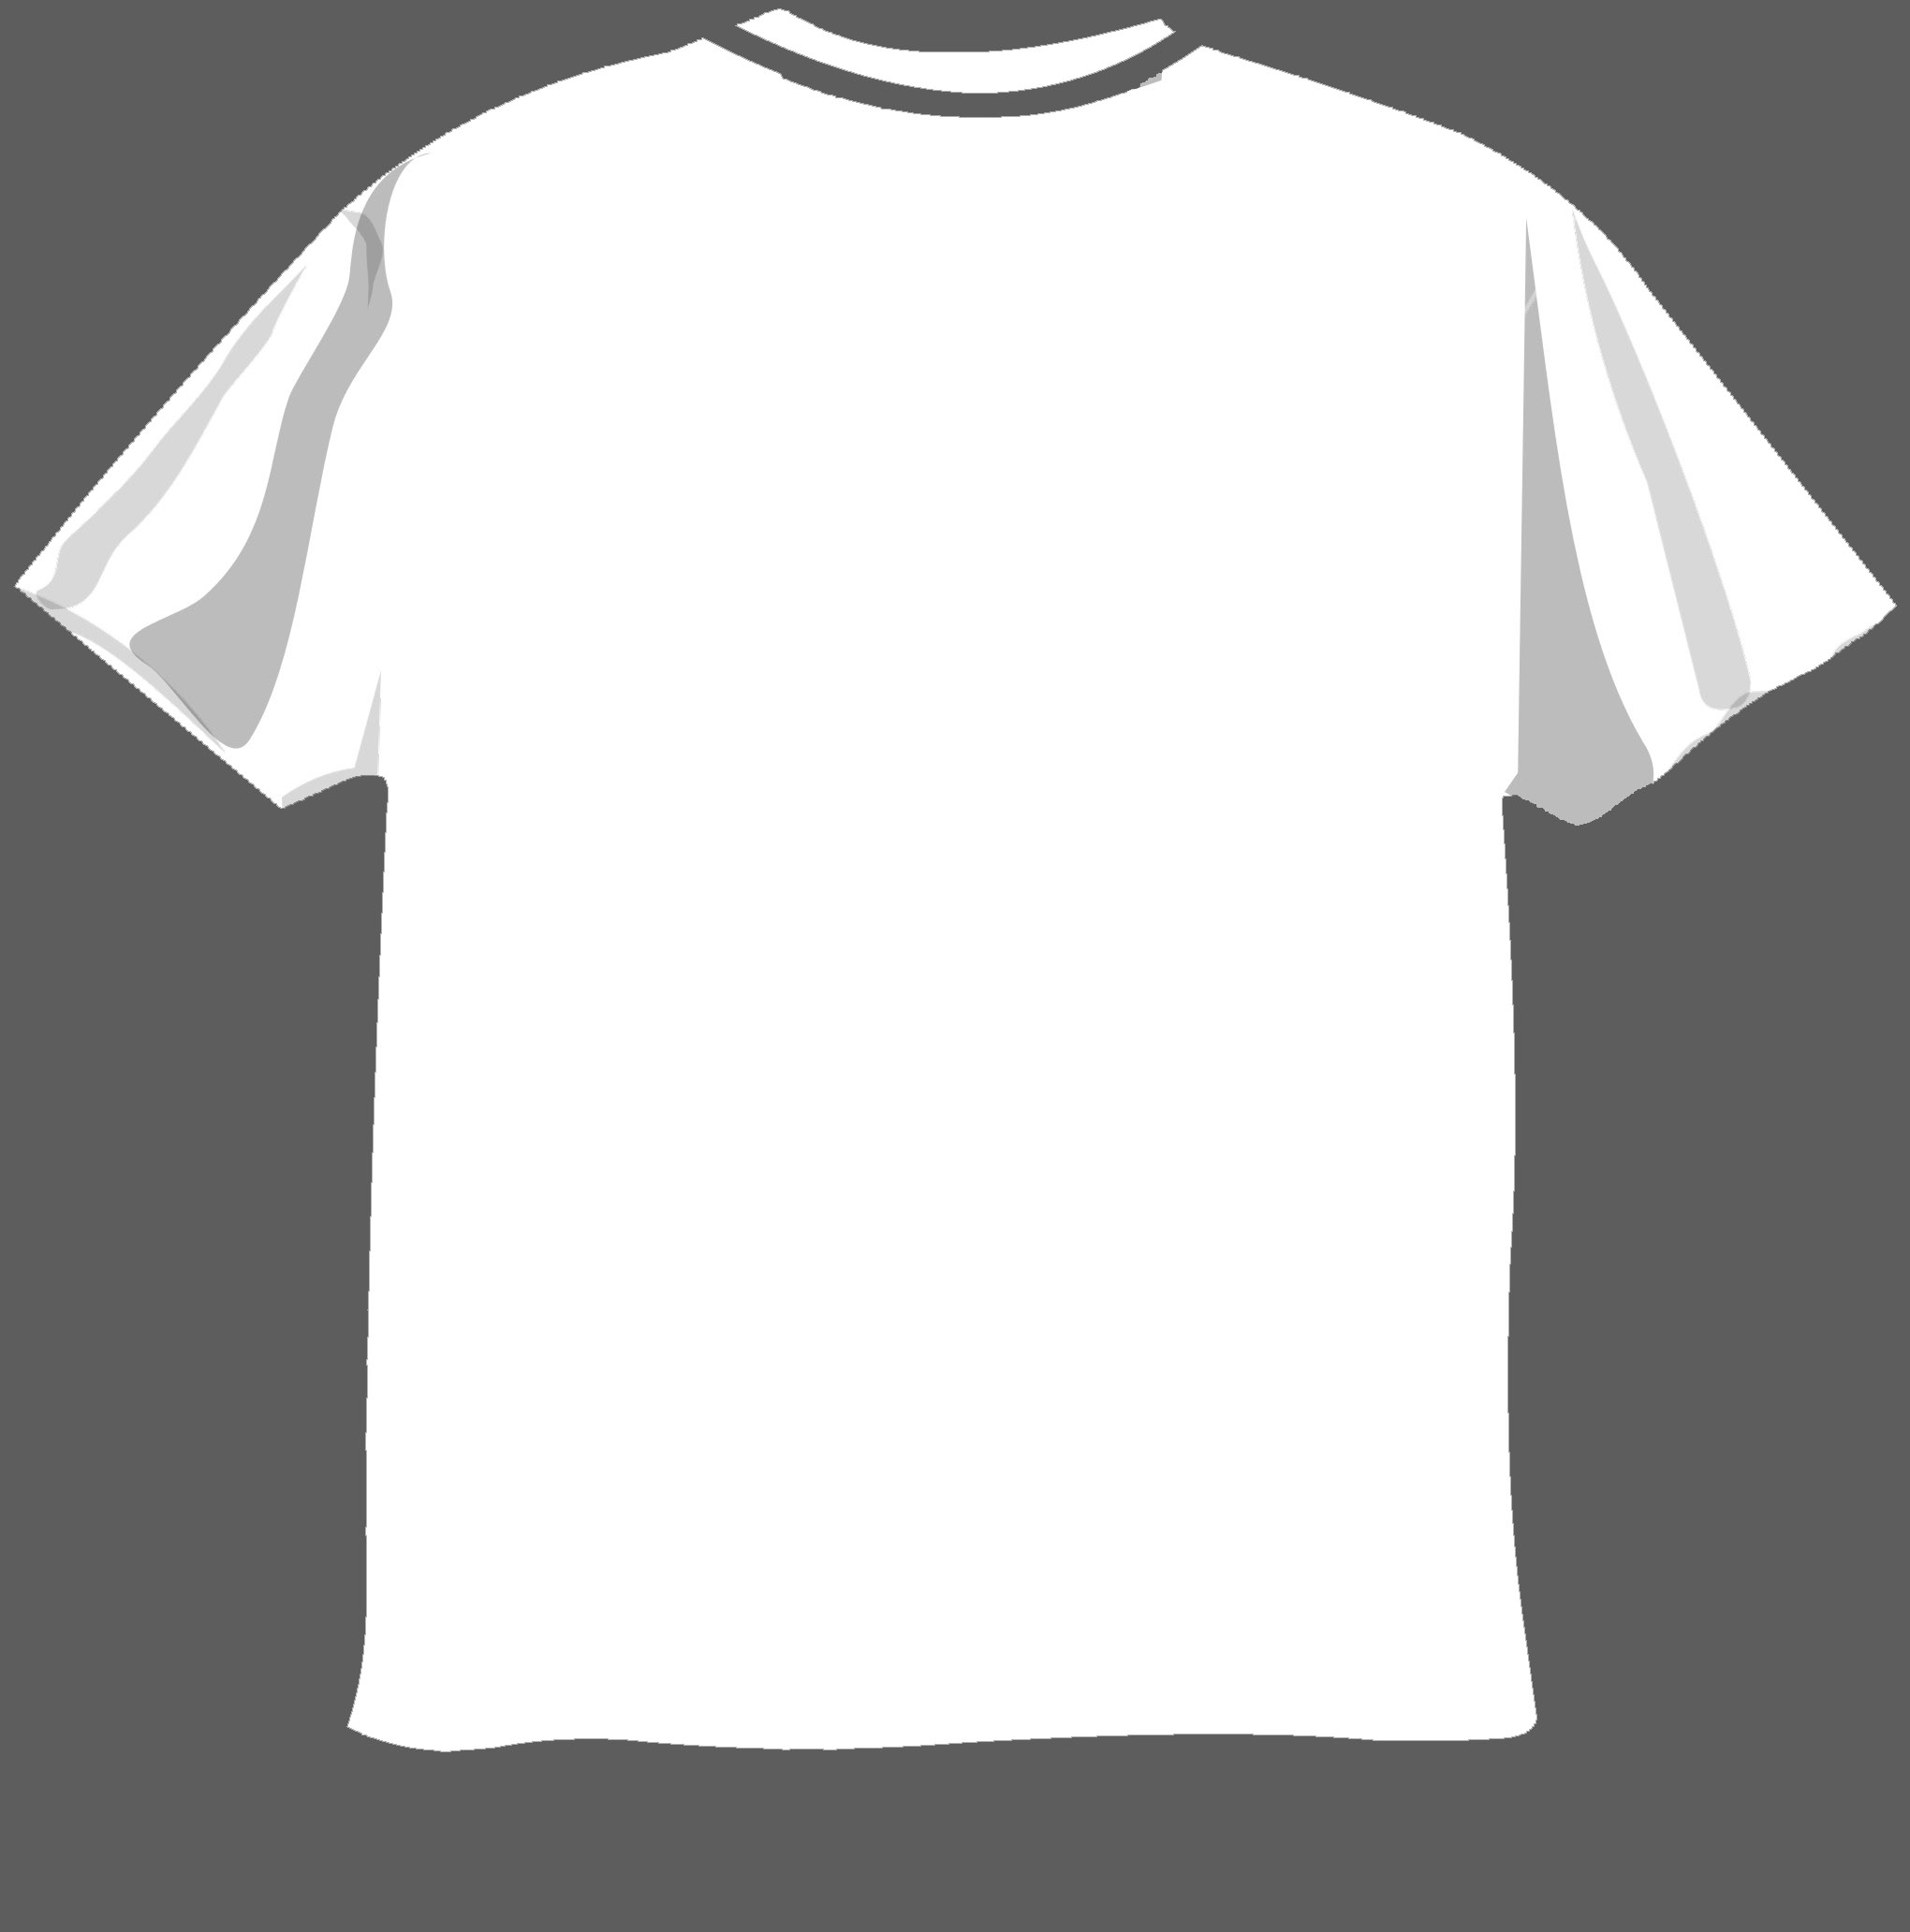 16 blank t shirt template photoshop images blank t shirt